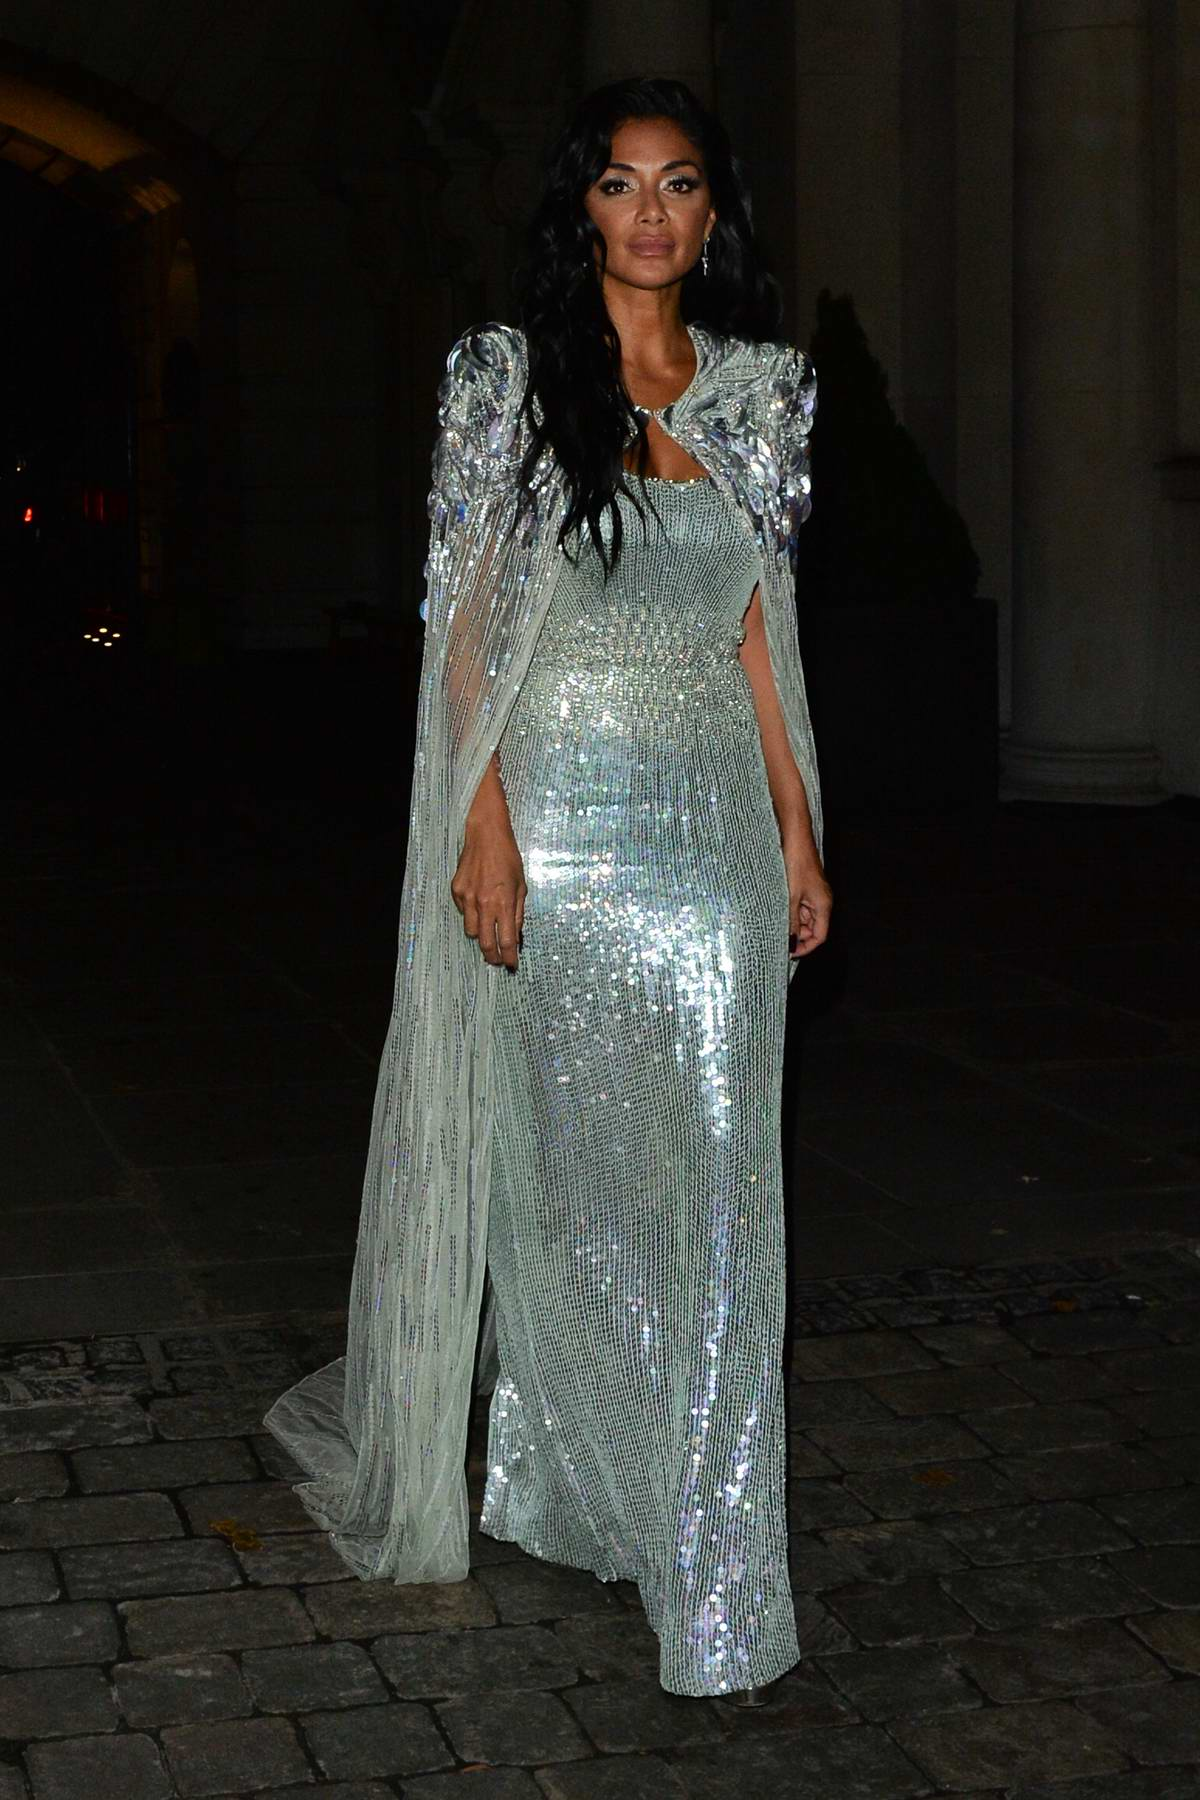 Nicole Scherzinger seen wearing a shimmery blue dress during a night out in Mayfair, London, UK